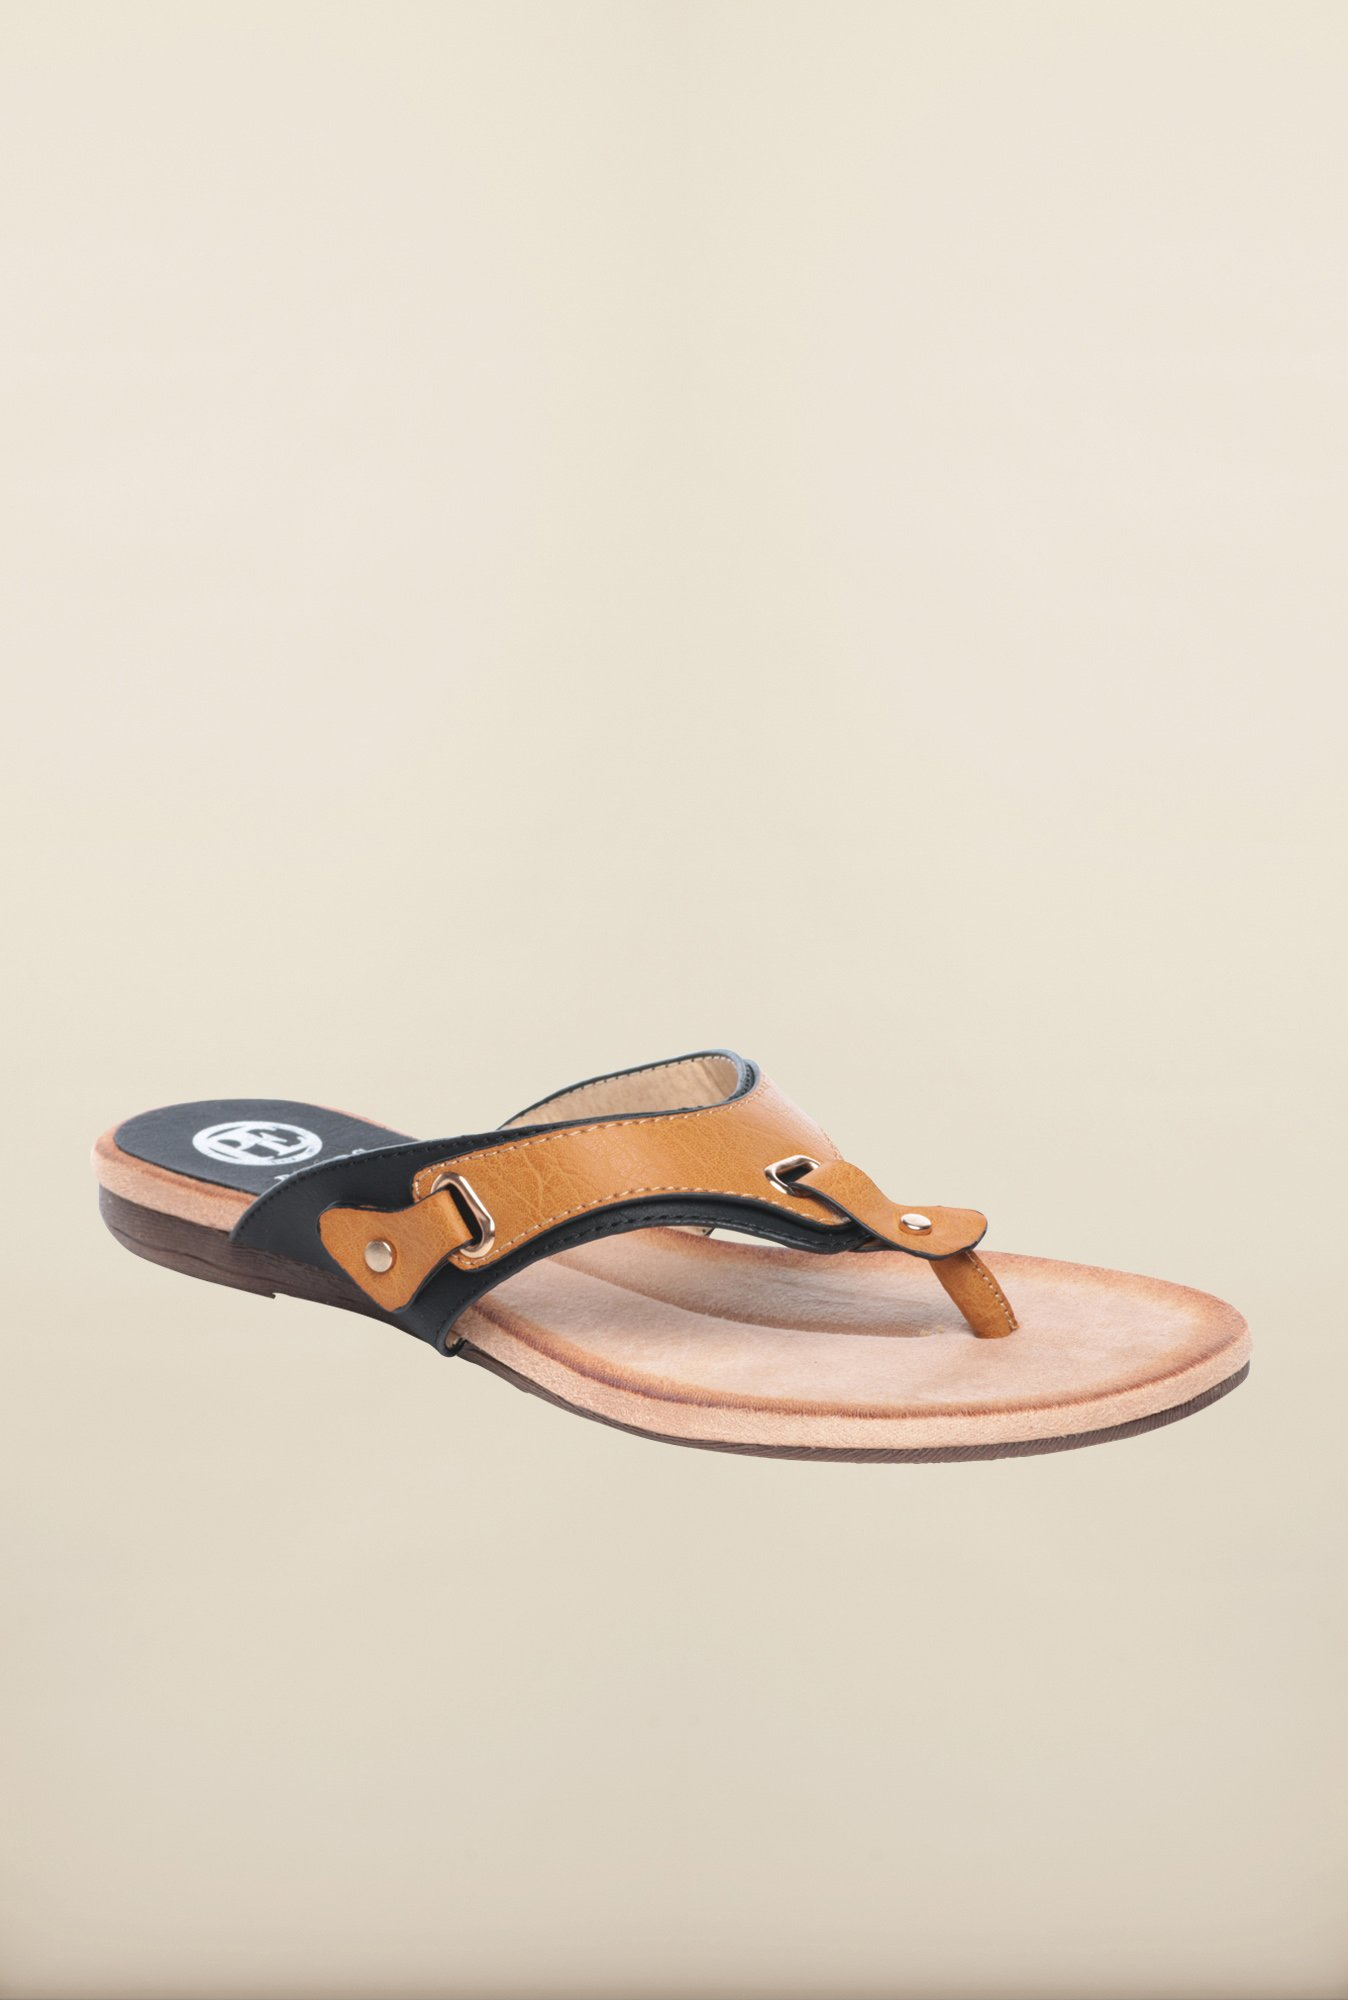 Pavers England Tan & Black Slippers